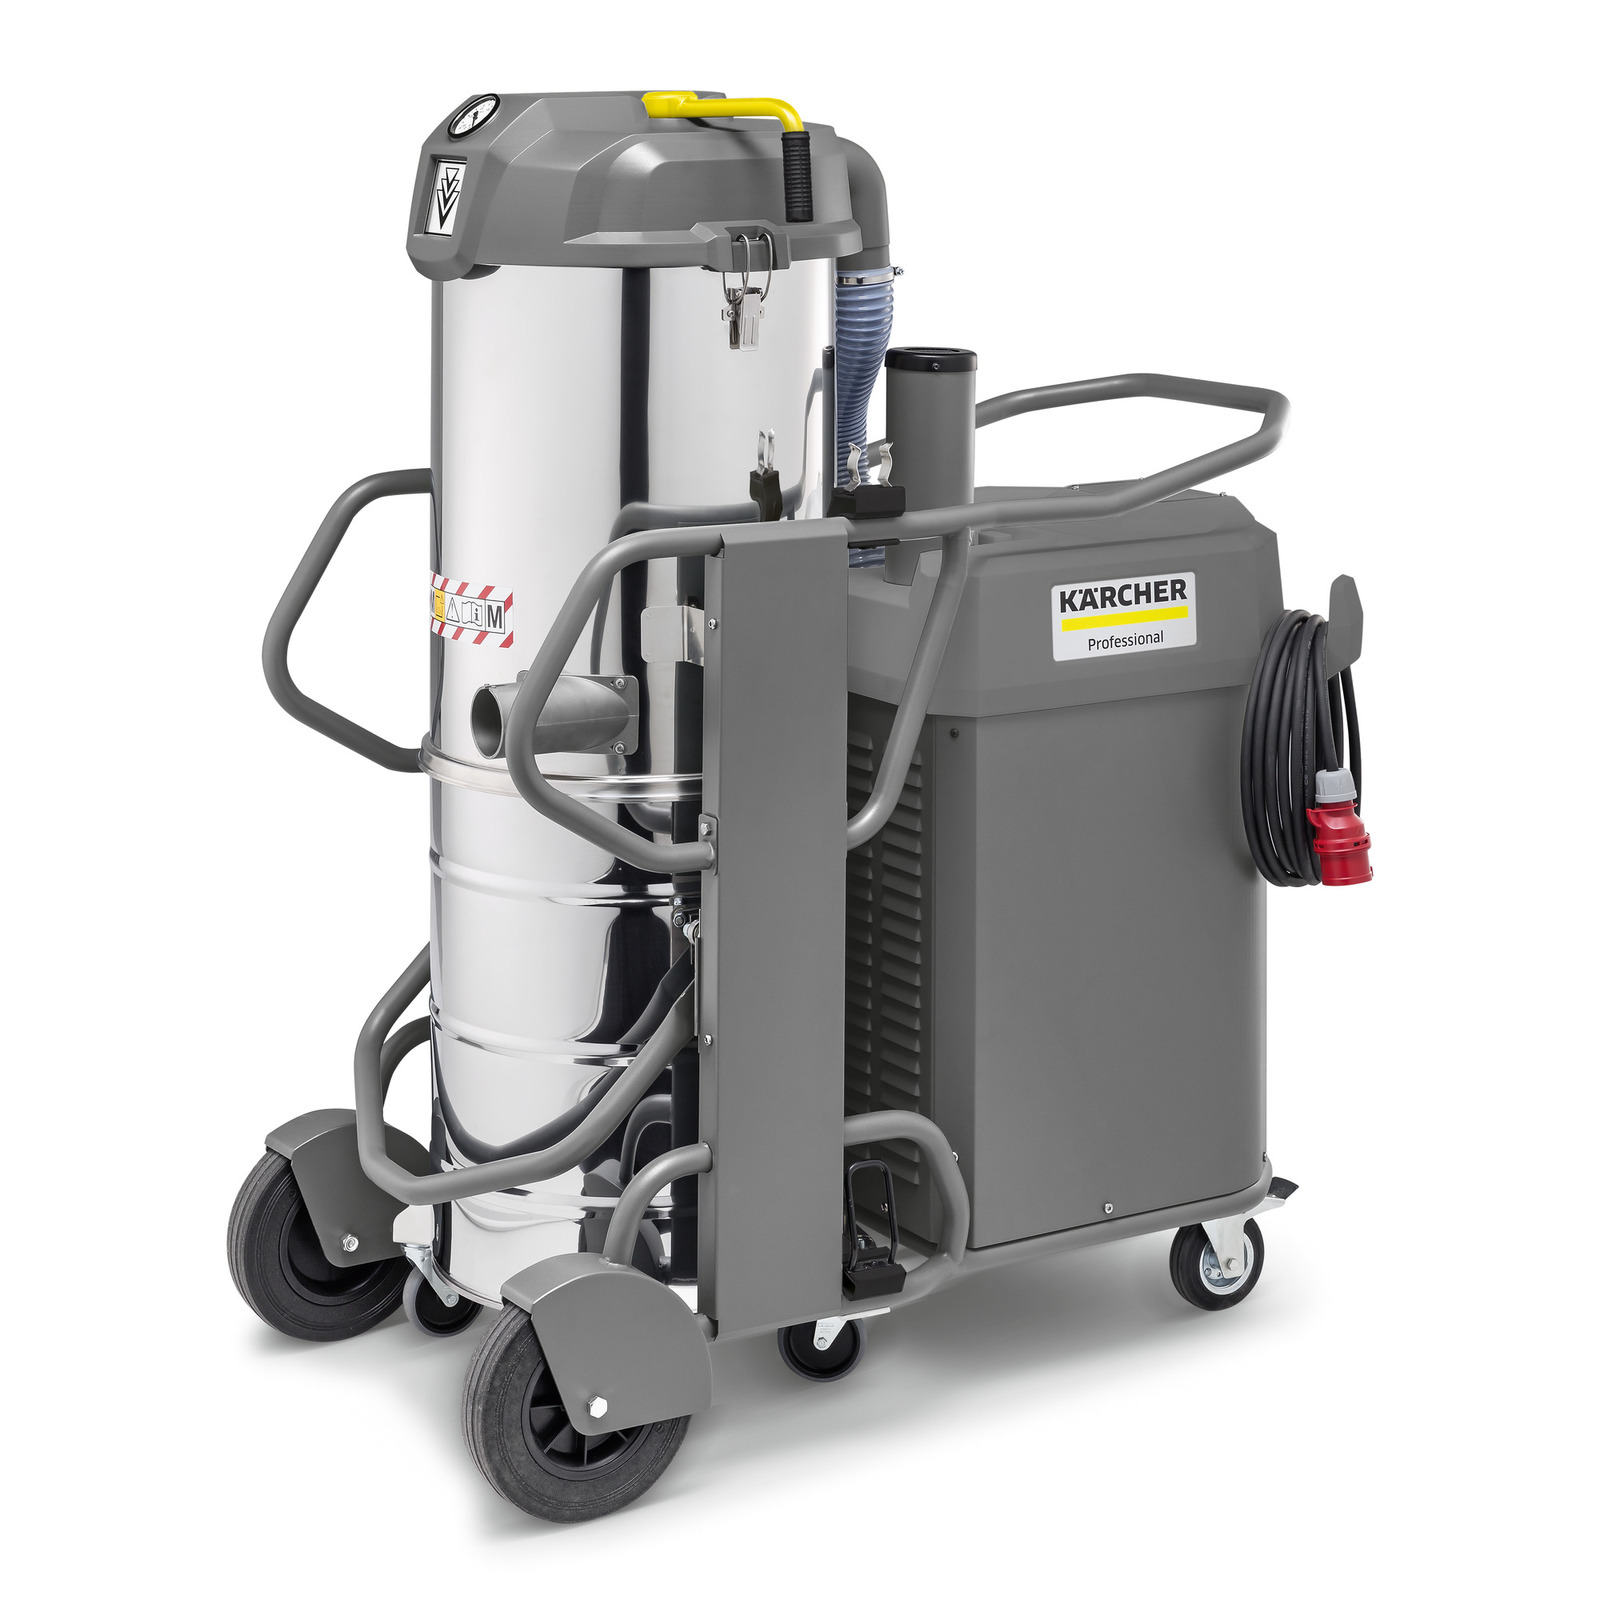 IVS 100/40 HEPA Industrial Vacuum Cleaner